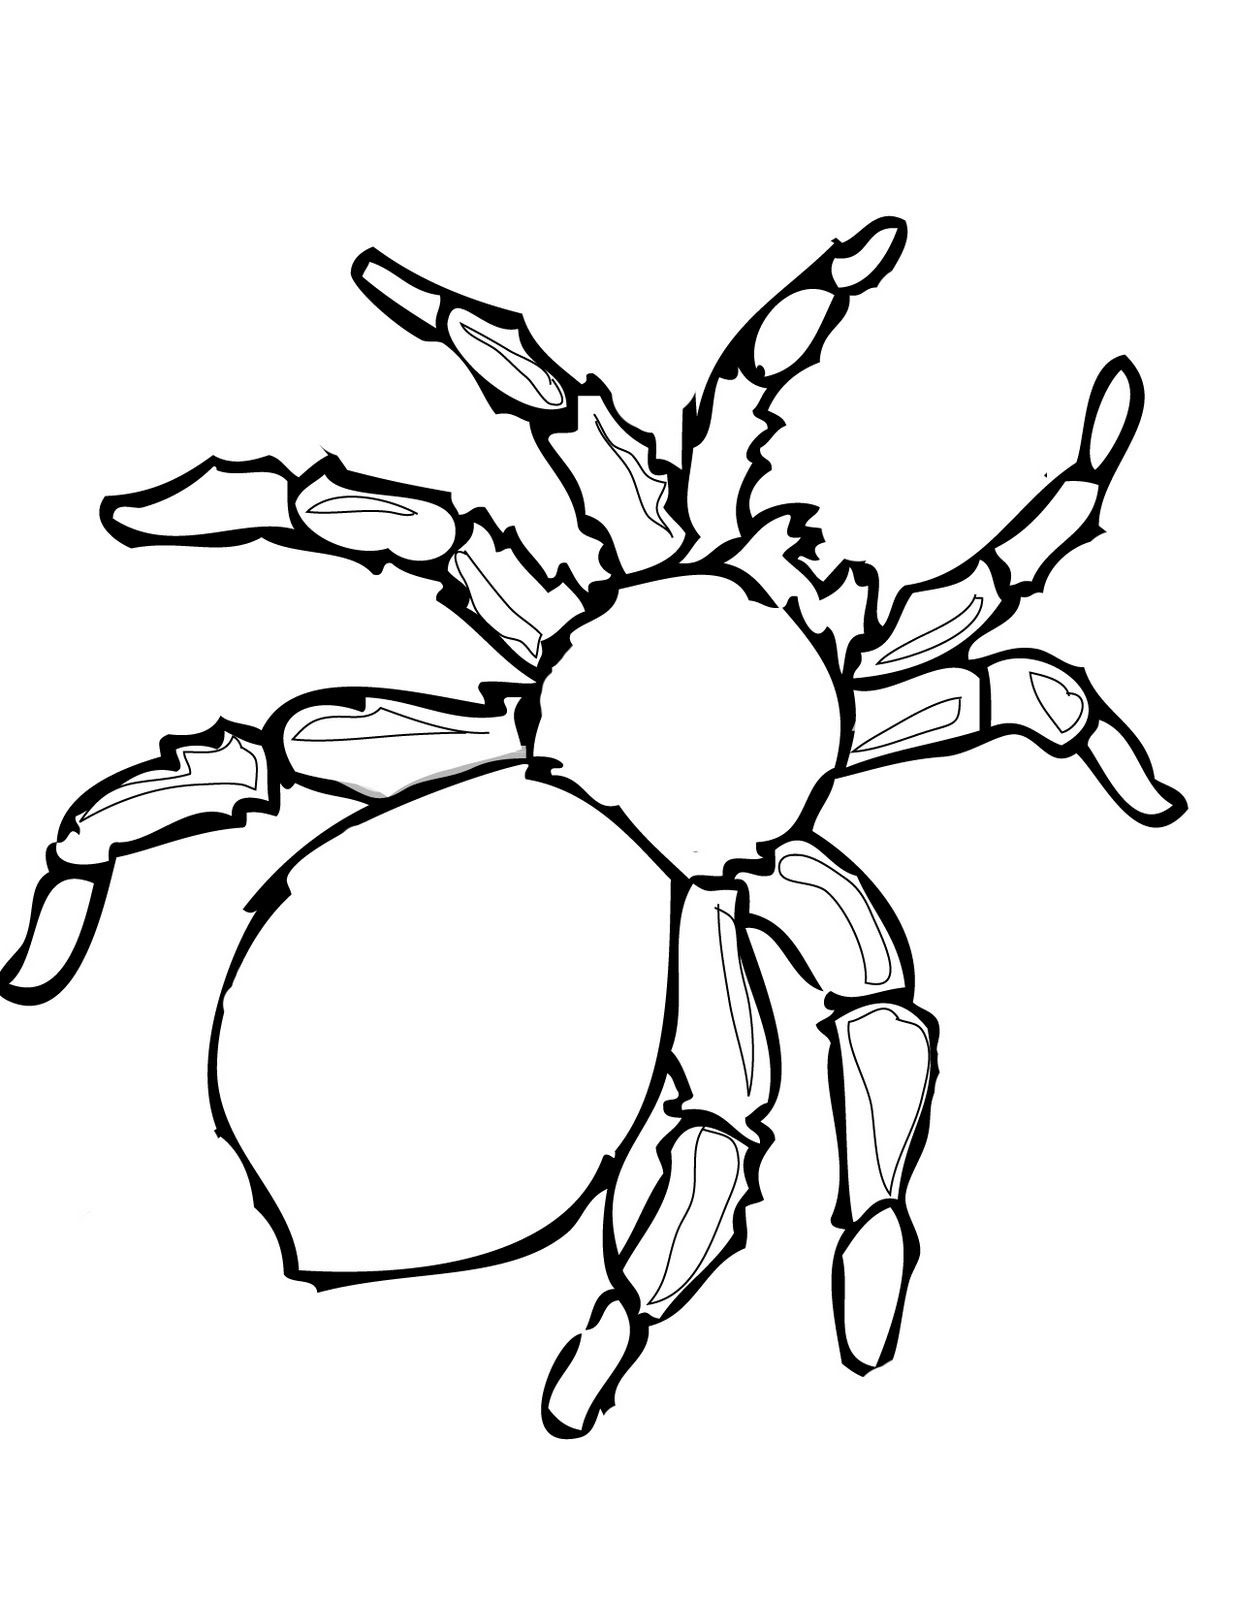 printable halloween spider coloring pages - photo#3